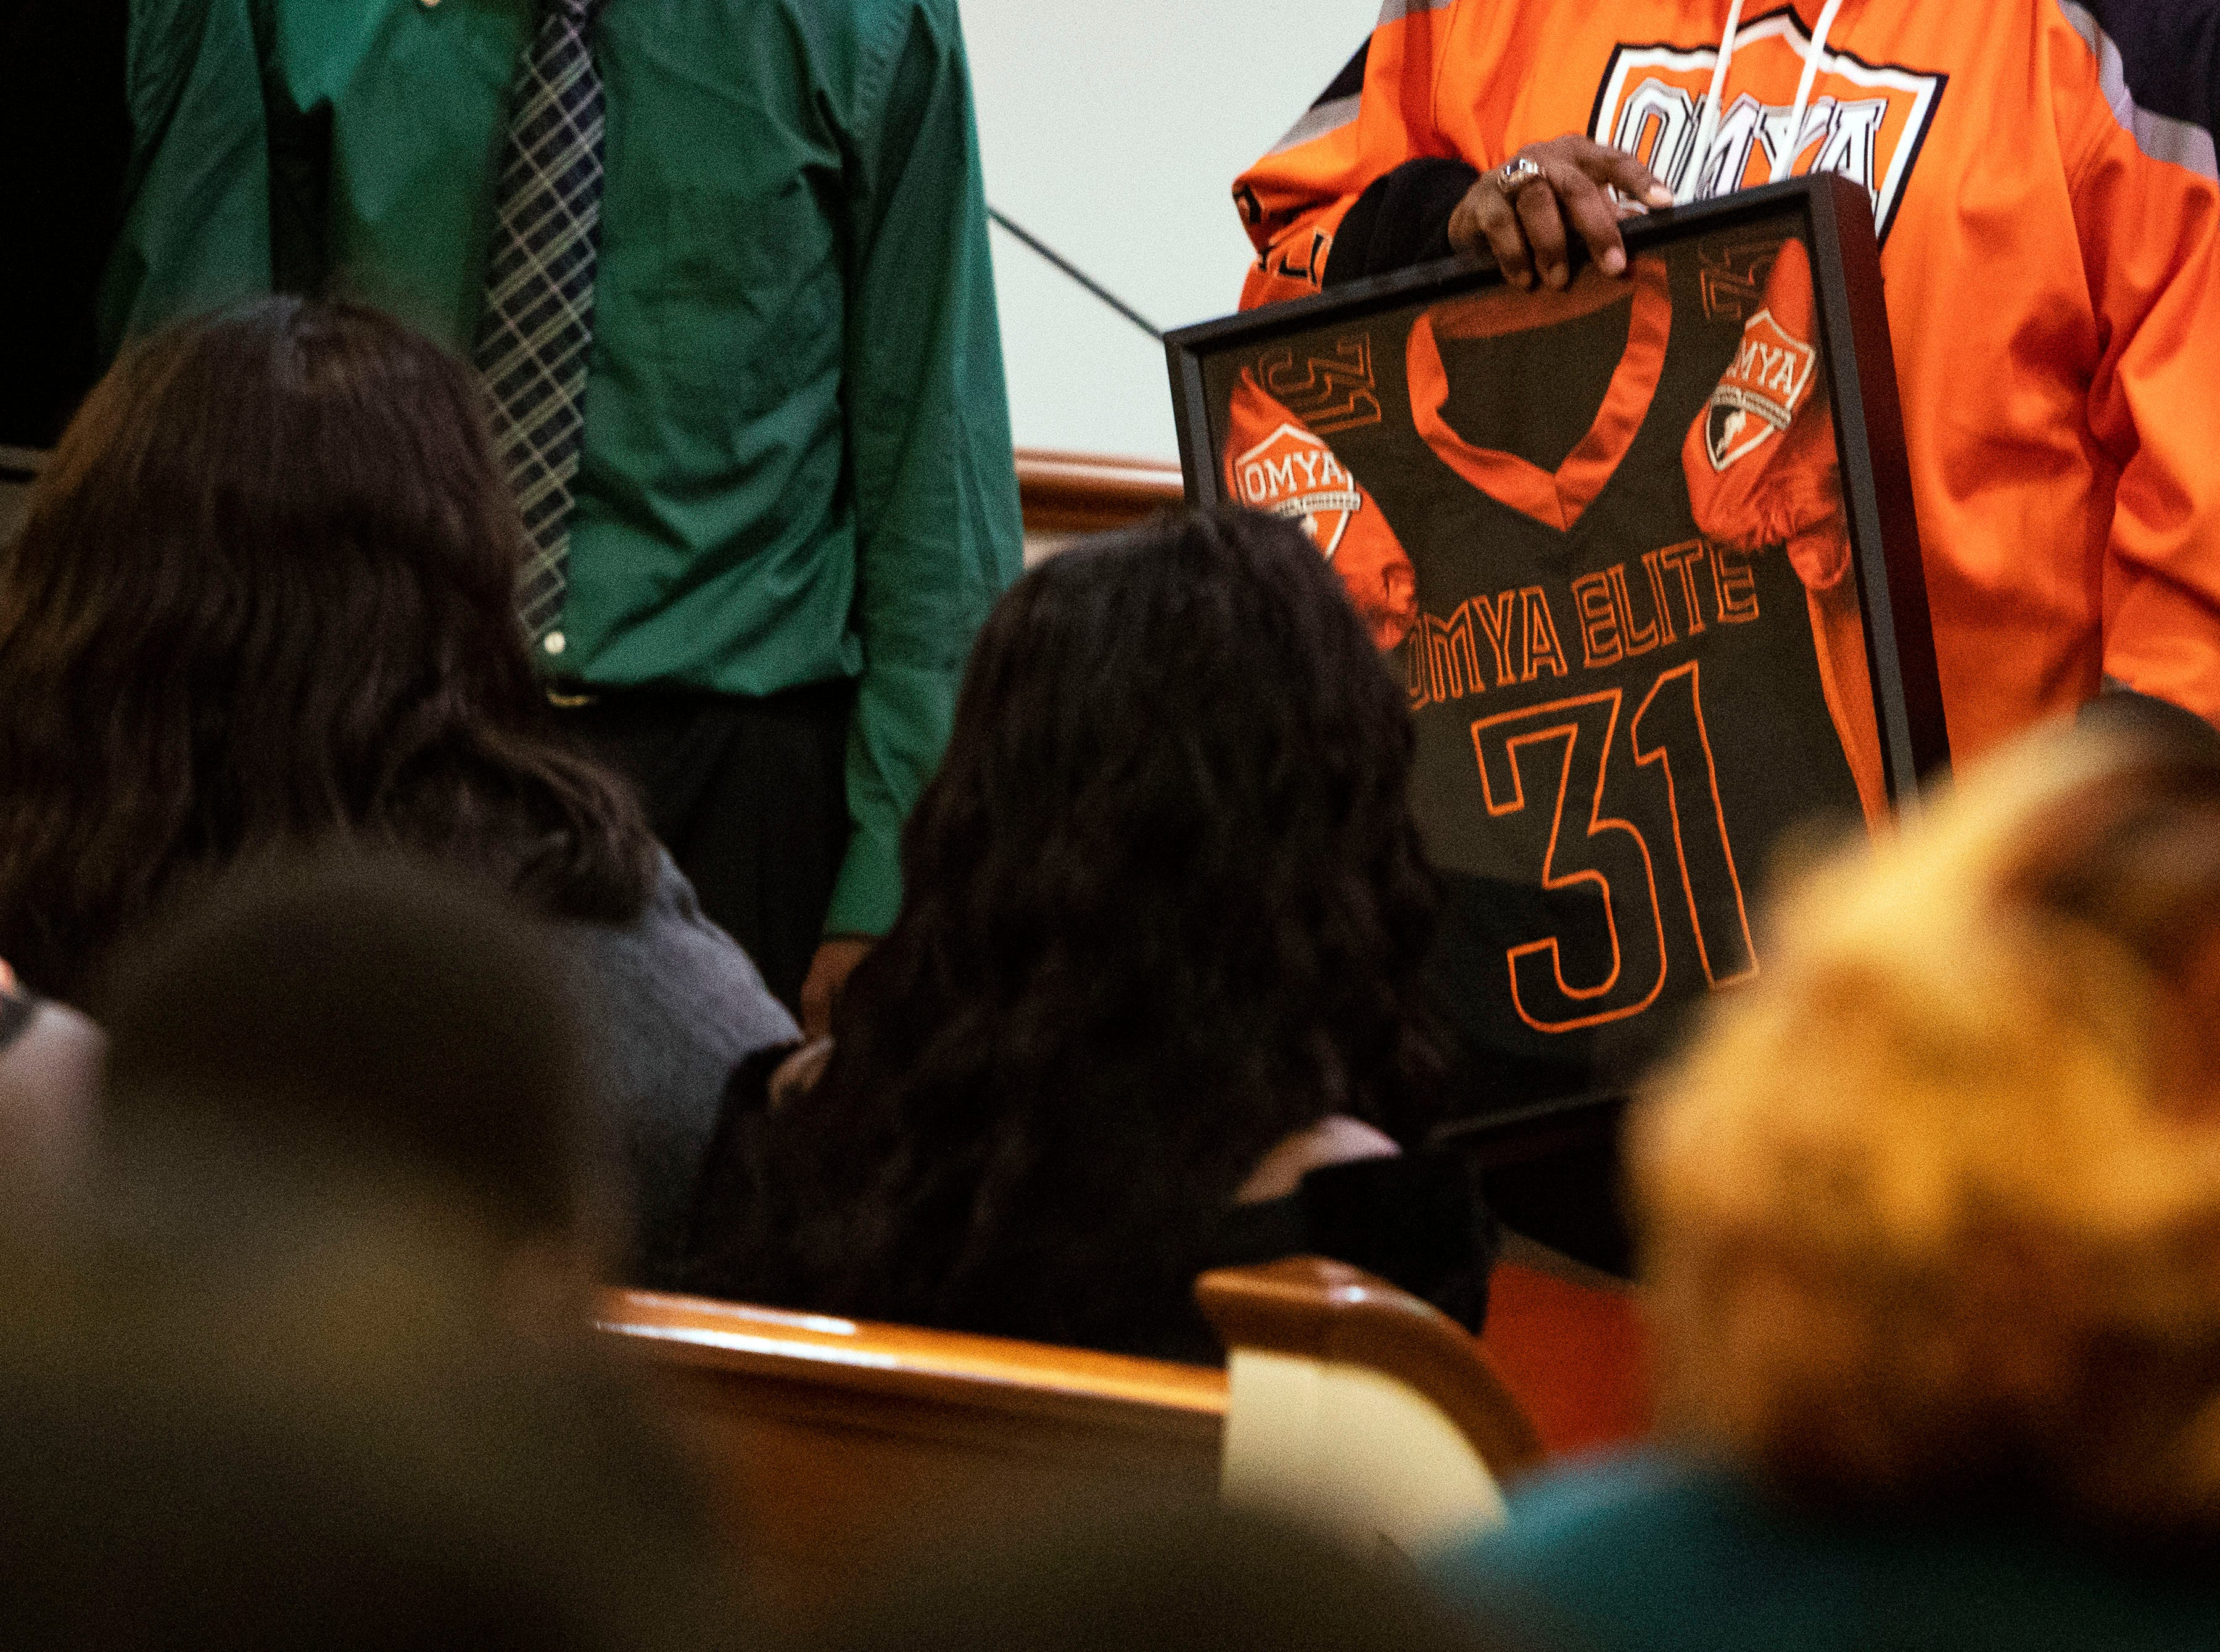 Kameren Johnson's parents are presented with jersey he wore before deadly bus crash, from the Orange Mound Youth Association, during the funeral, Saturday, Dec. 15, 2018.